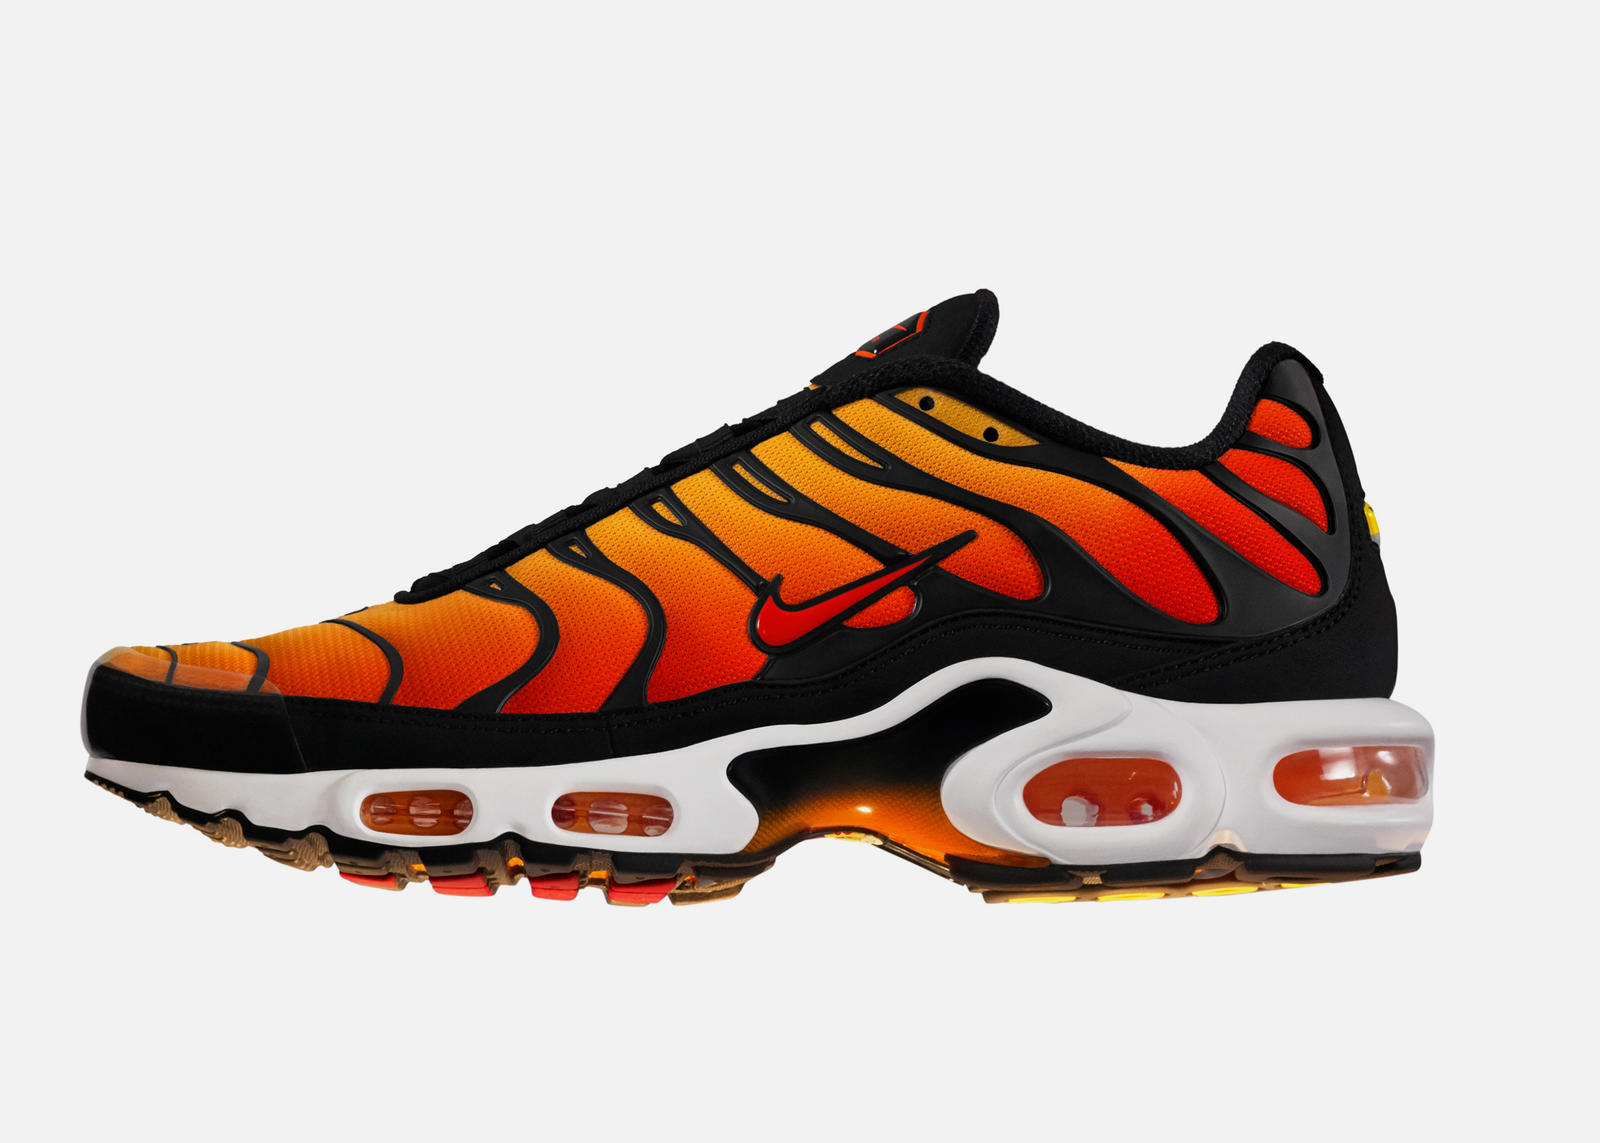 Herren Nike Air Max TN Schuhe Marine Gold Orange Weiß